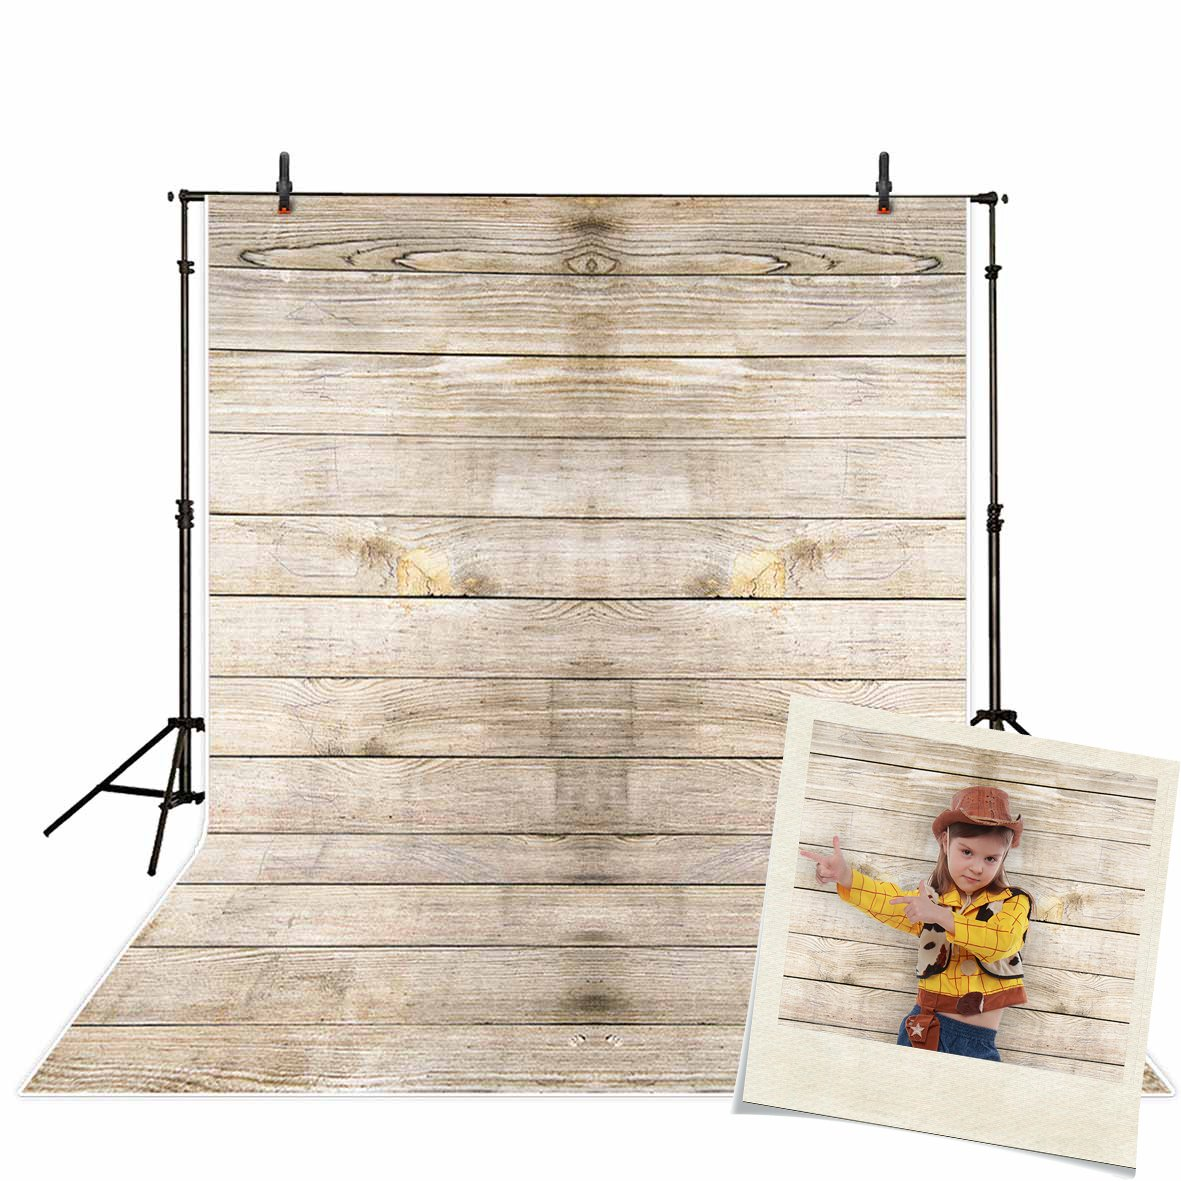 Funnytree 5x7ft Vinyl Photography Background Backdrops Wooden Board Child Baby Shower Photo Studio Prop photobooth Photoshoot by Funnytree